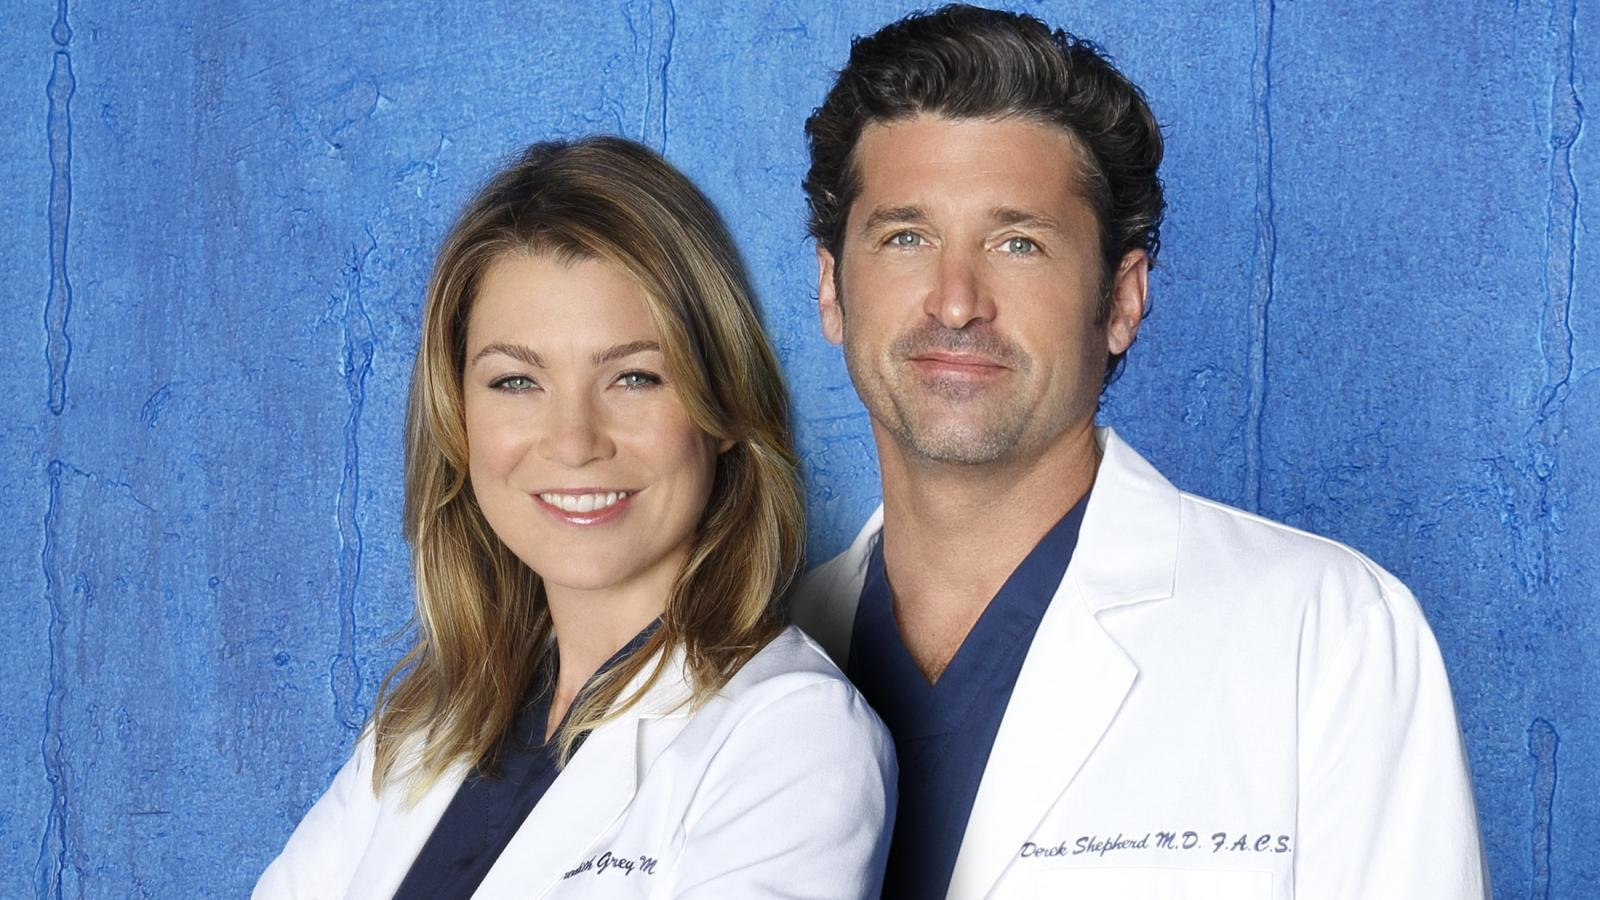 Awesome Greys Anatomy Free Wallpaper Id54579 For Hd